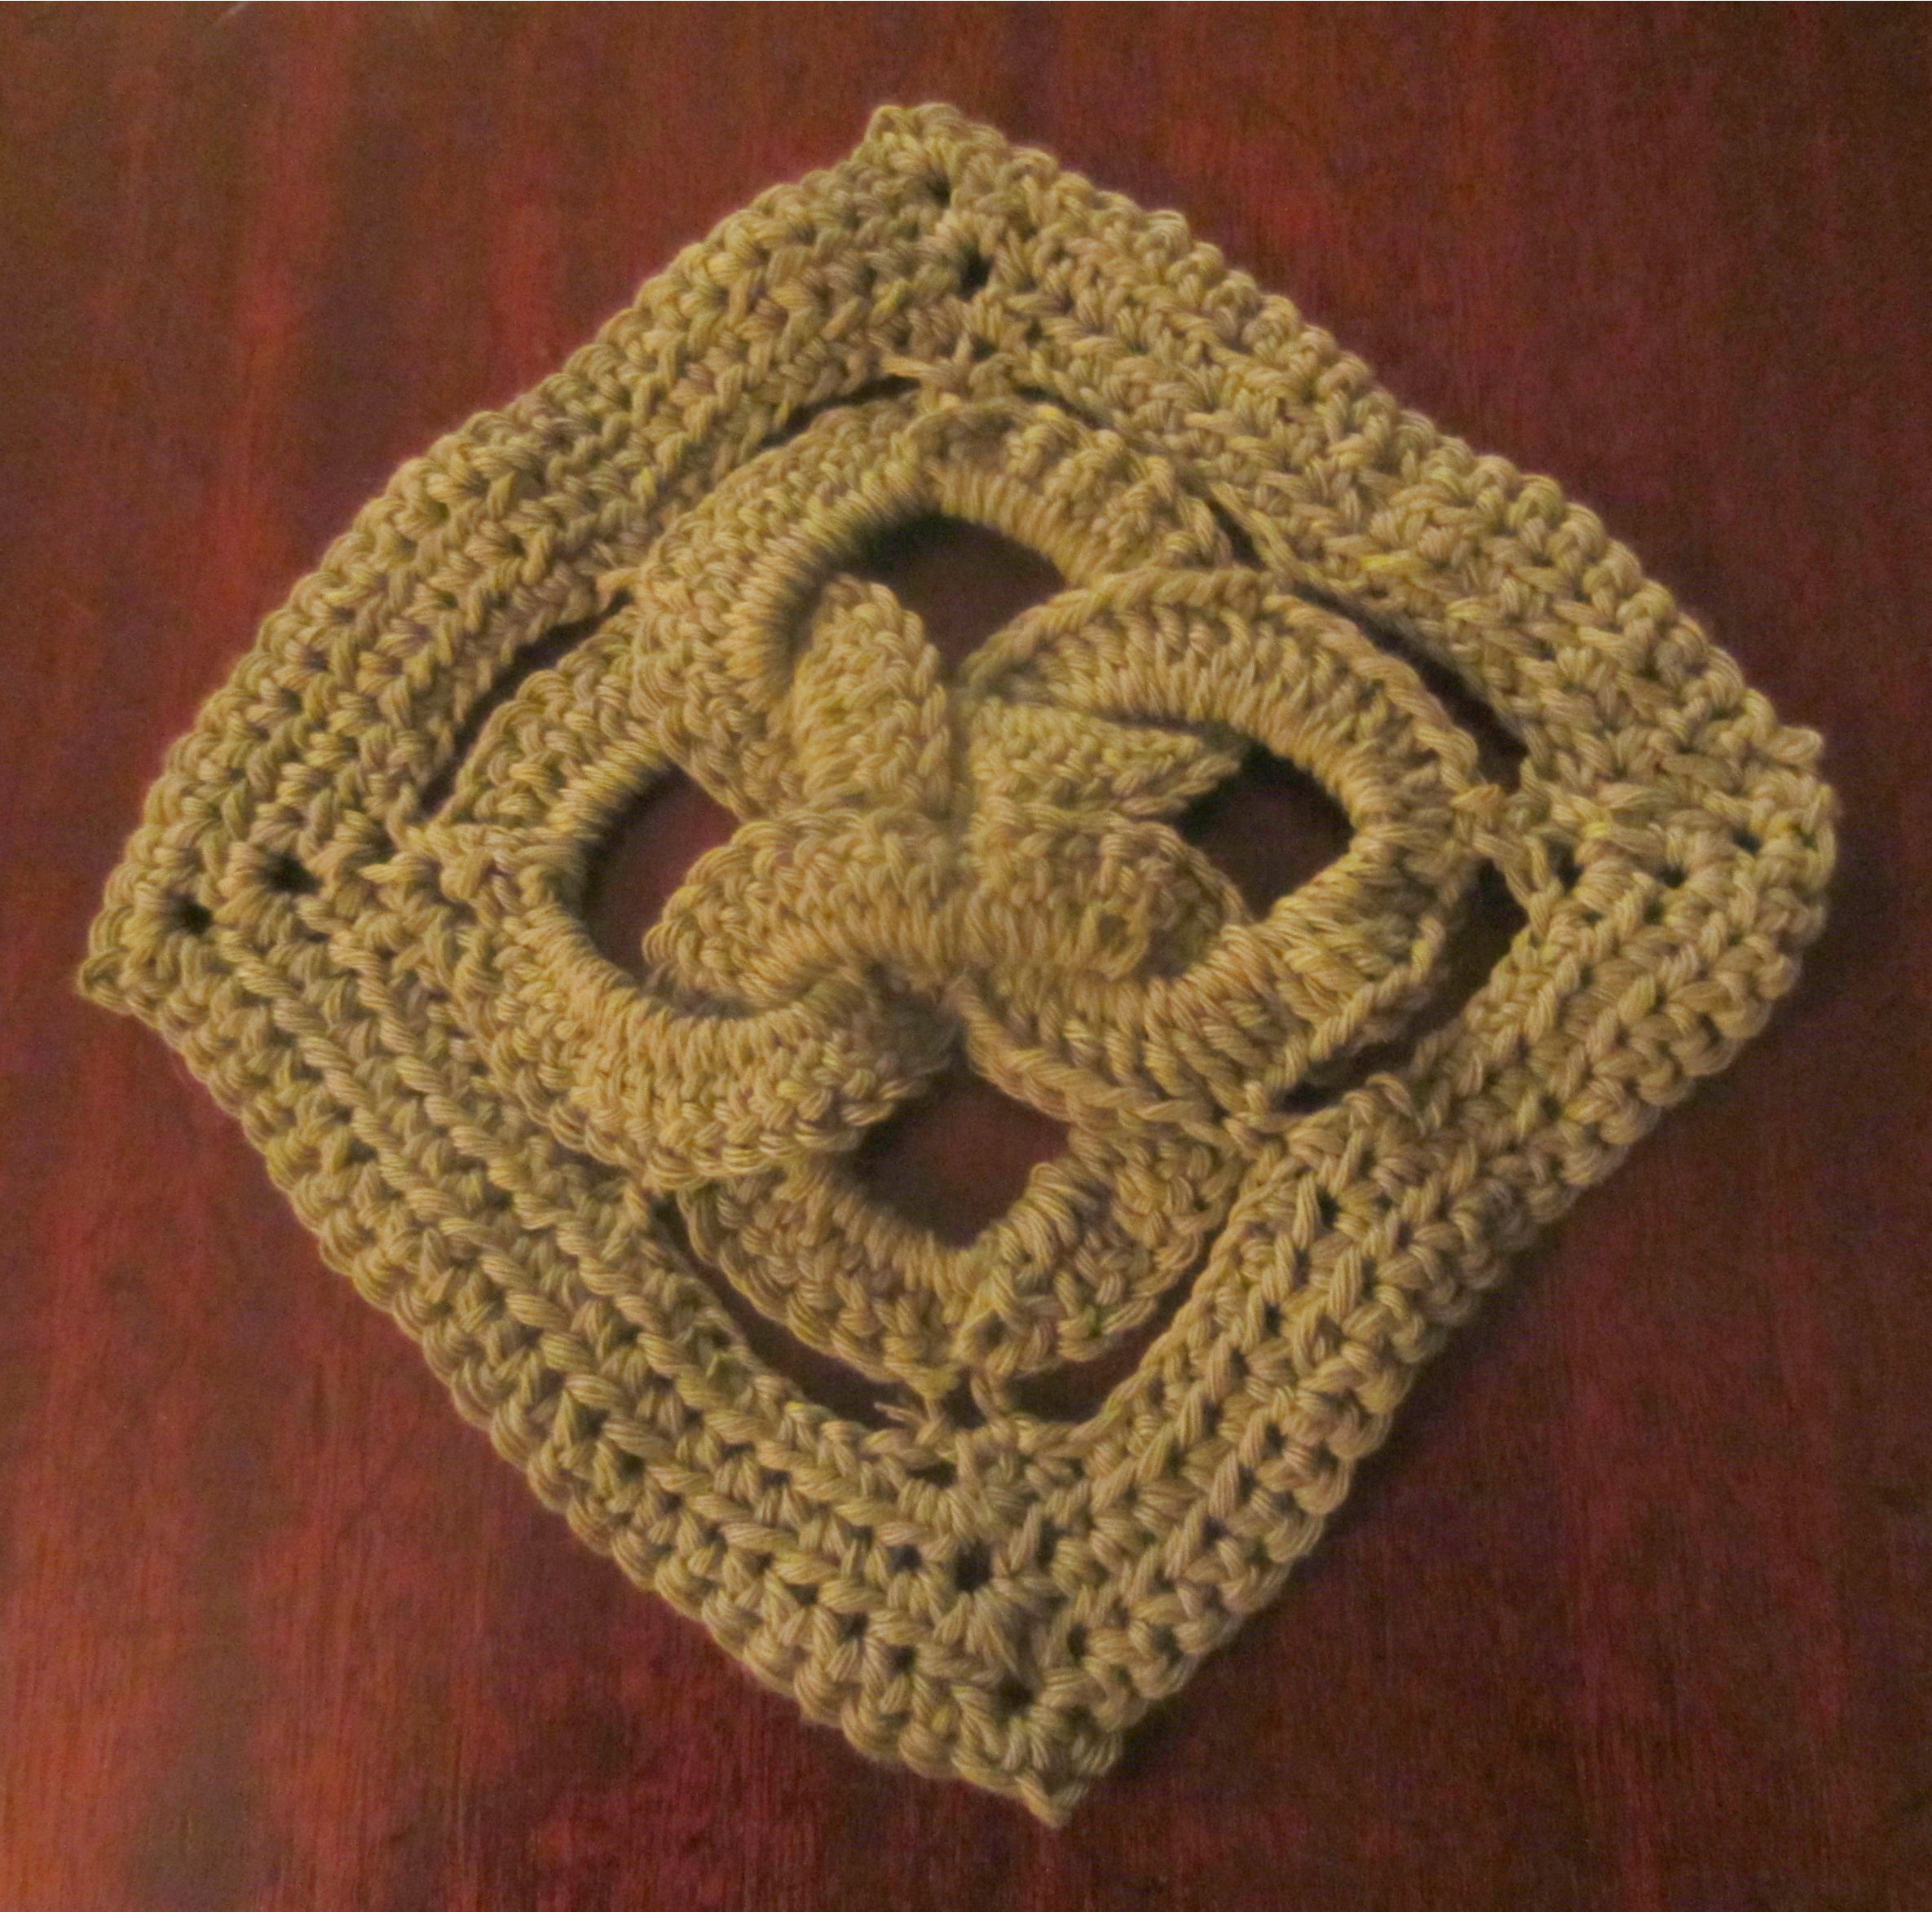 Crochet Knot : Cotton Crochet Celtic Knot Dishcloth Yarn Workings Pinterest